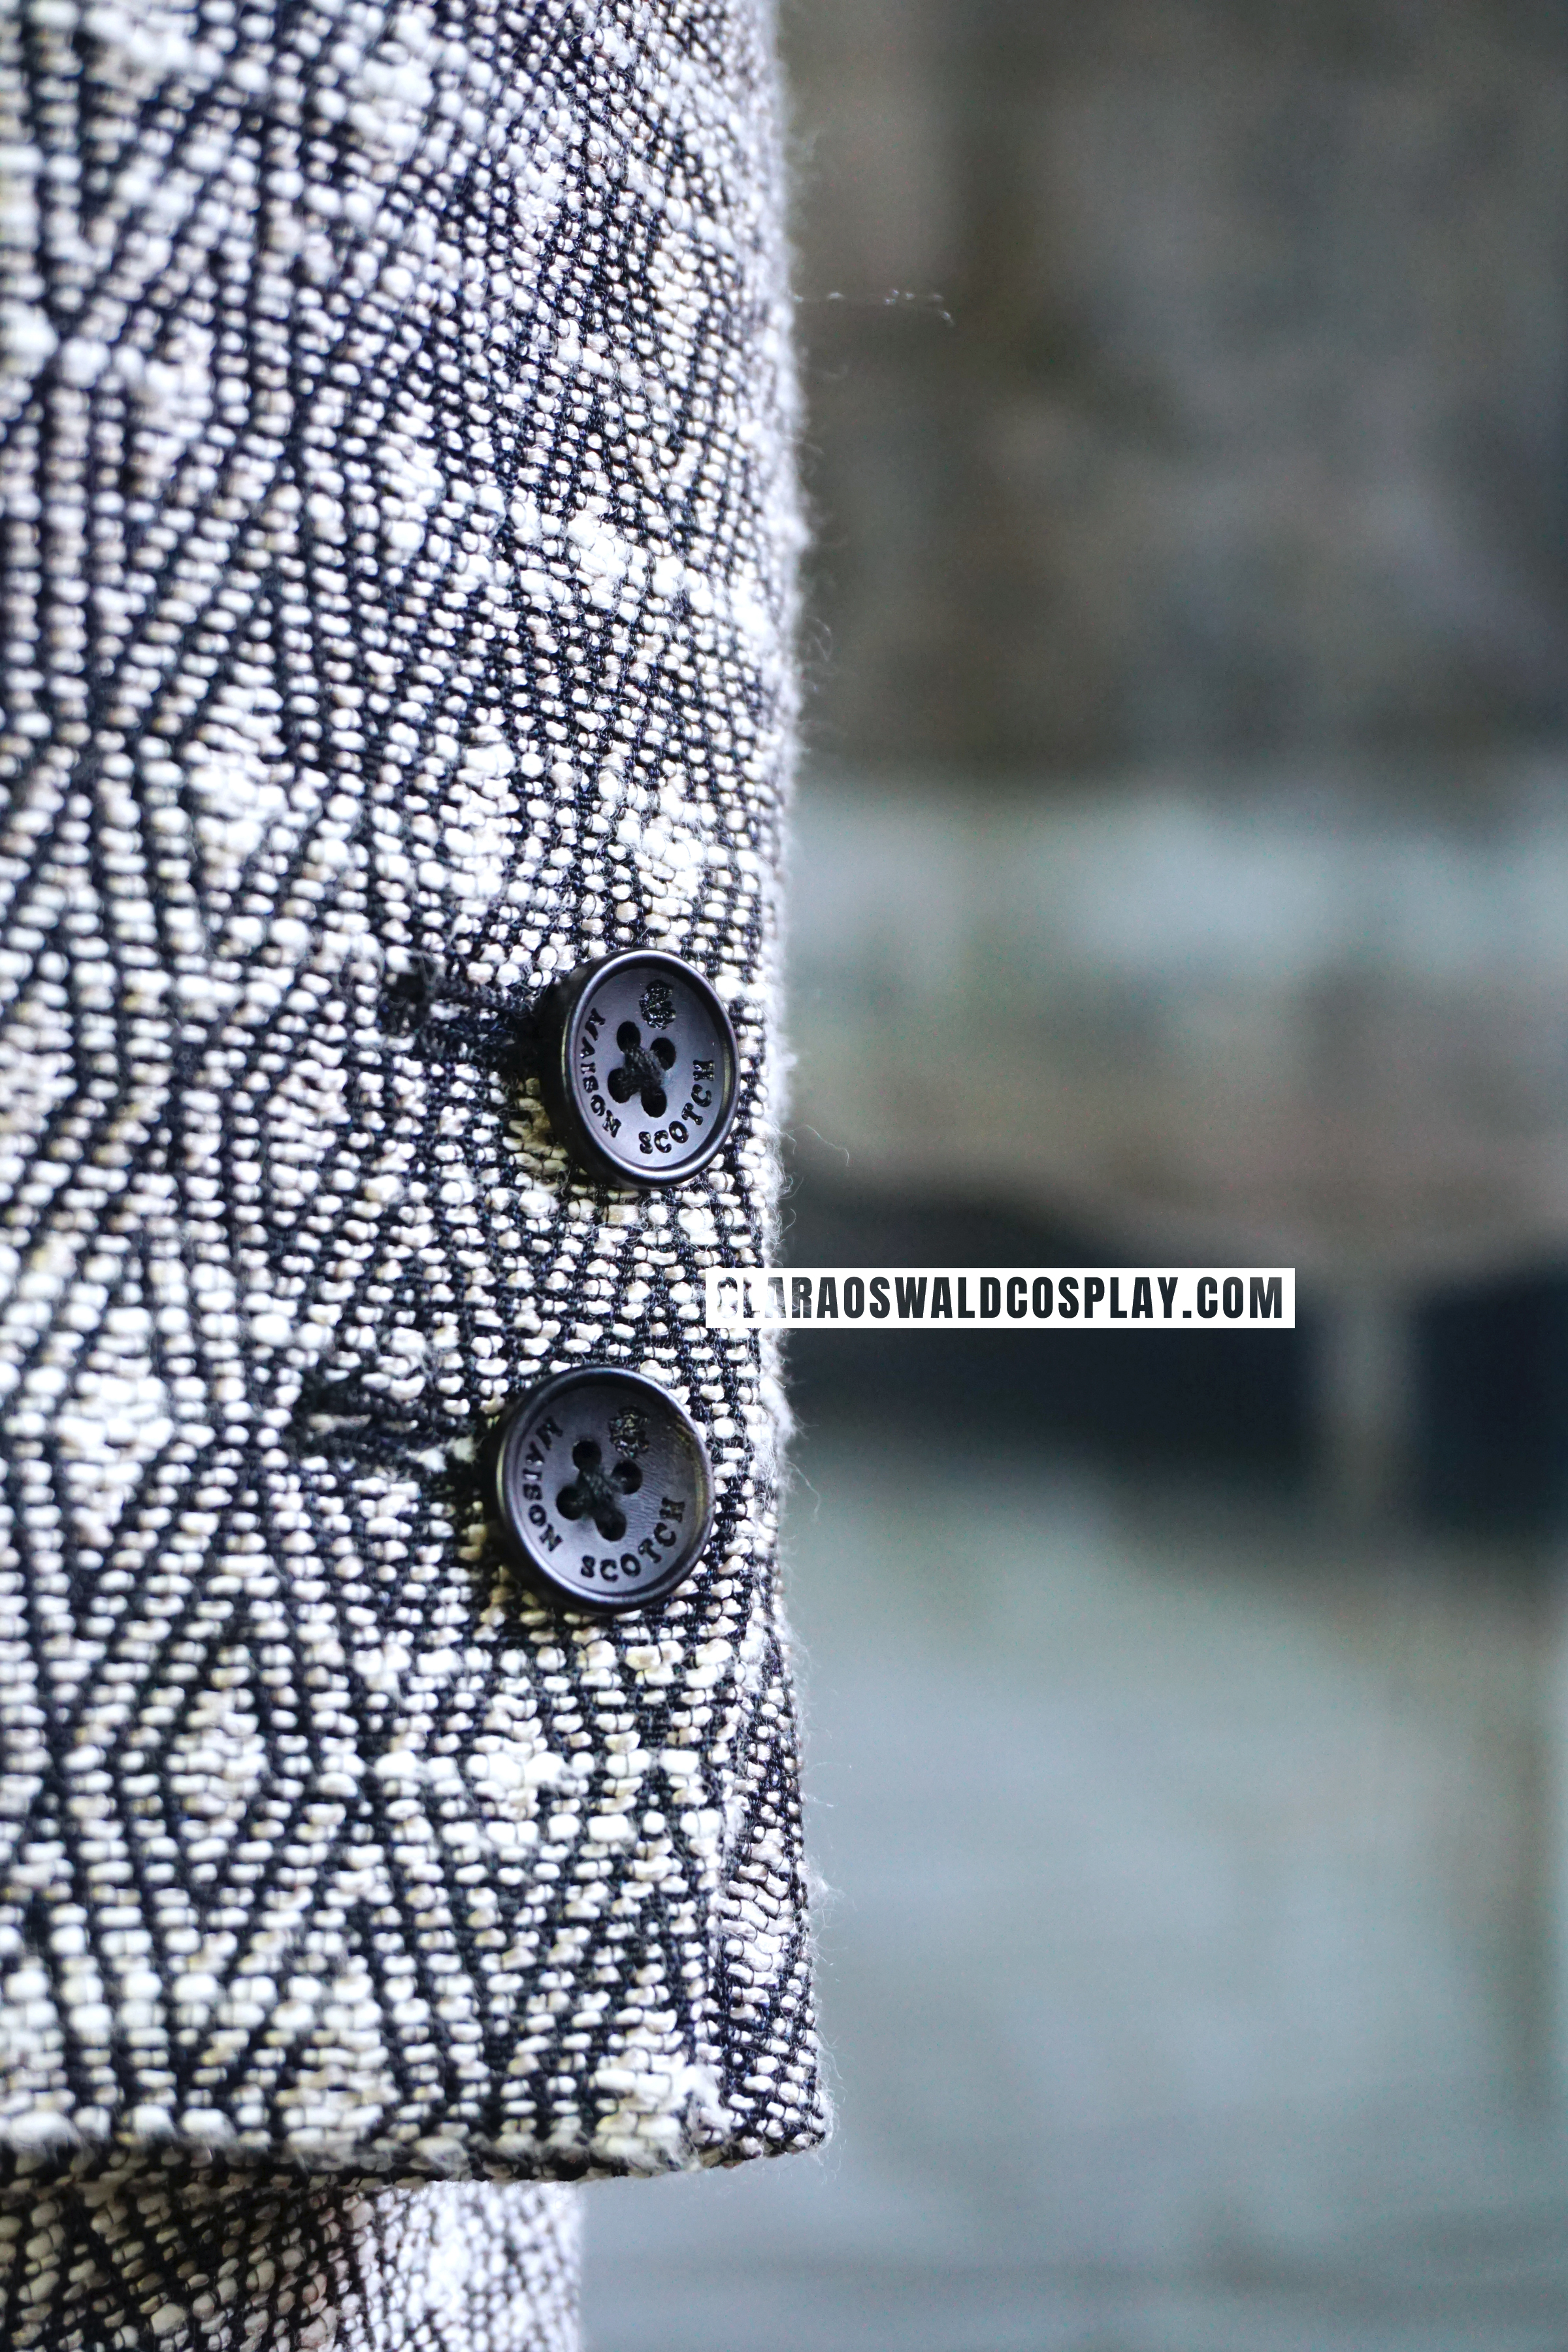 Detailed picture of the buttons